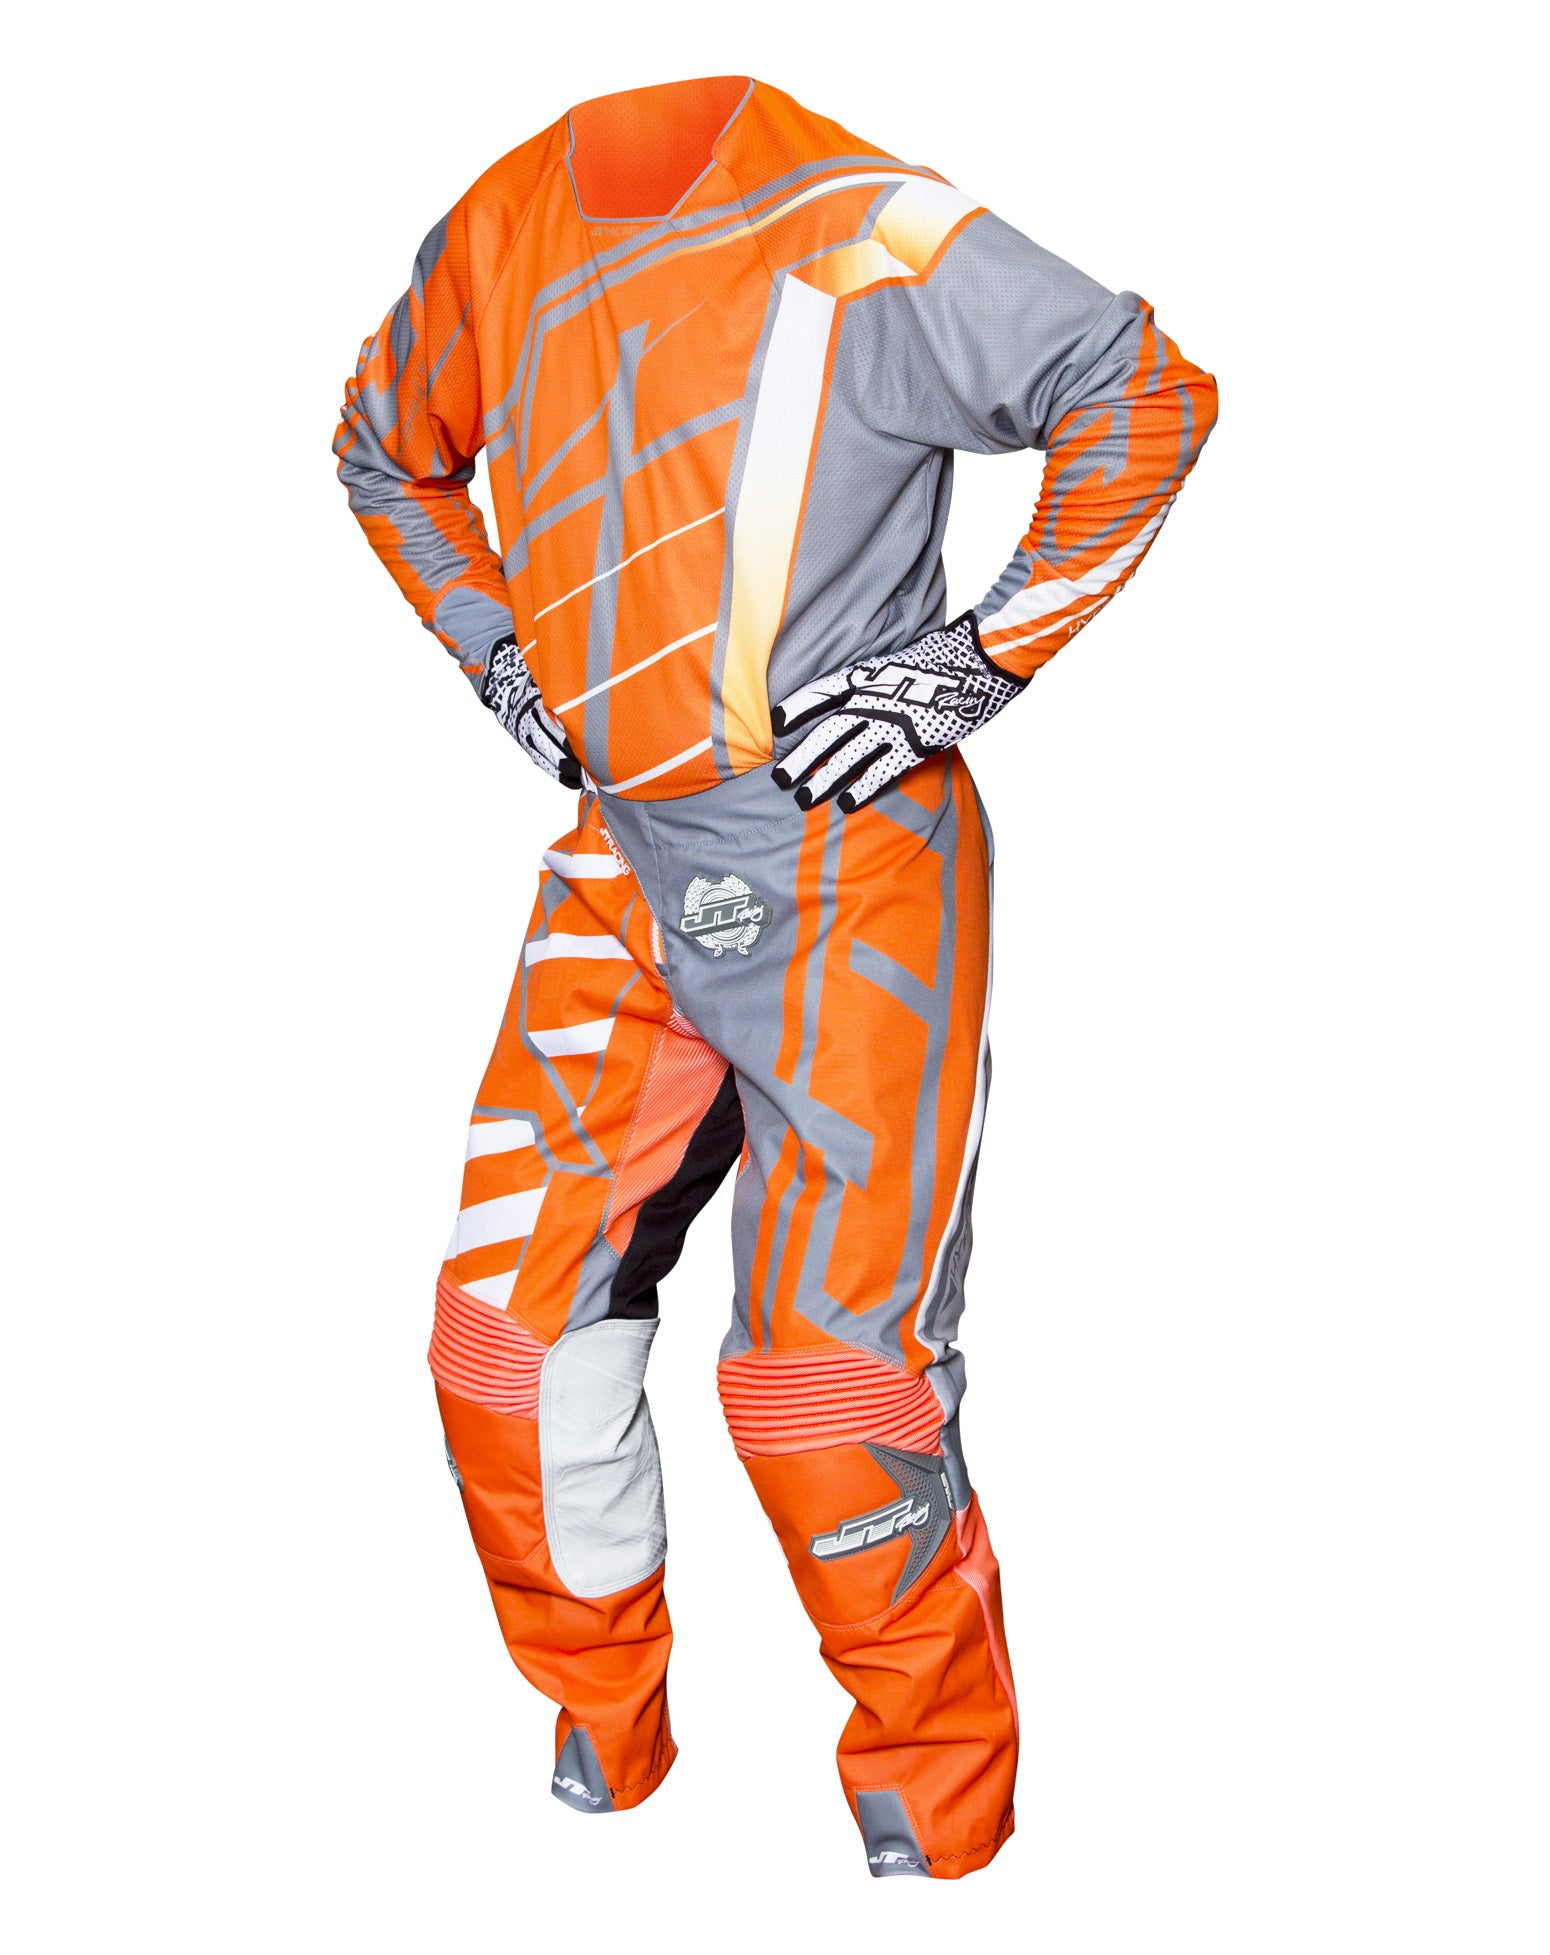 JT RACING USA-2017 Hyperlite Breaker Pants, Fluro Orange/Grey